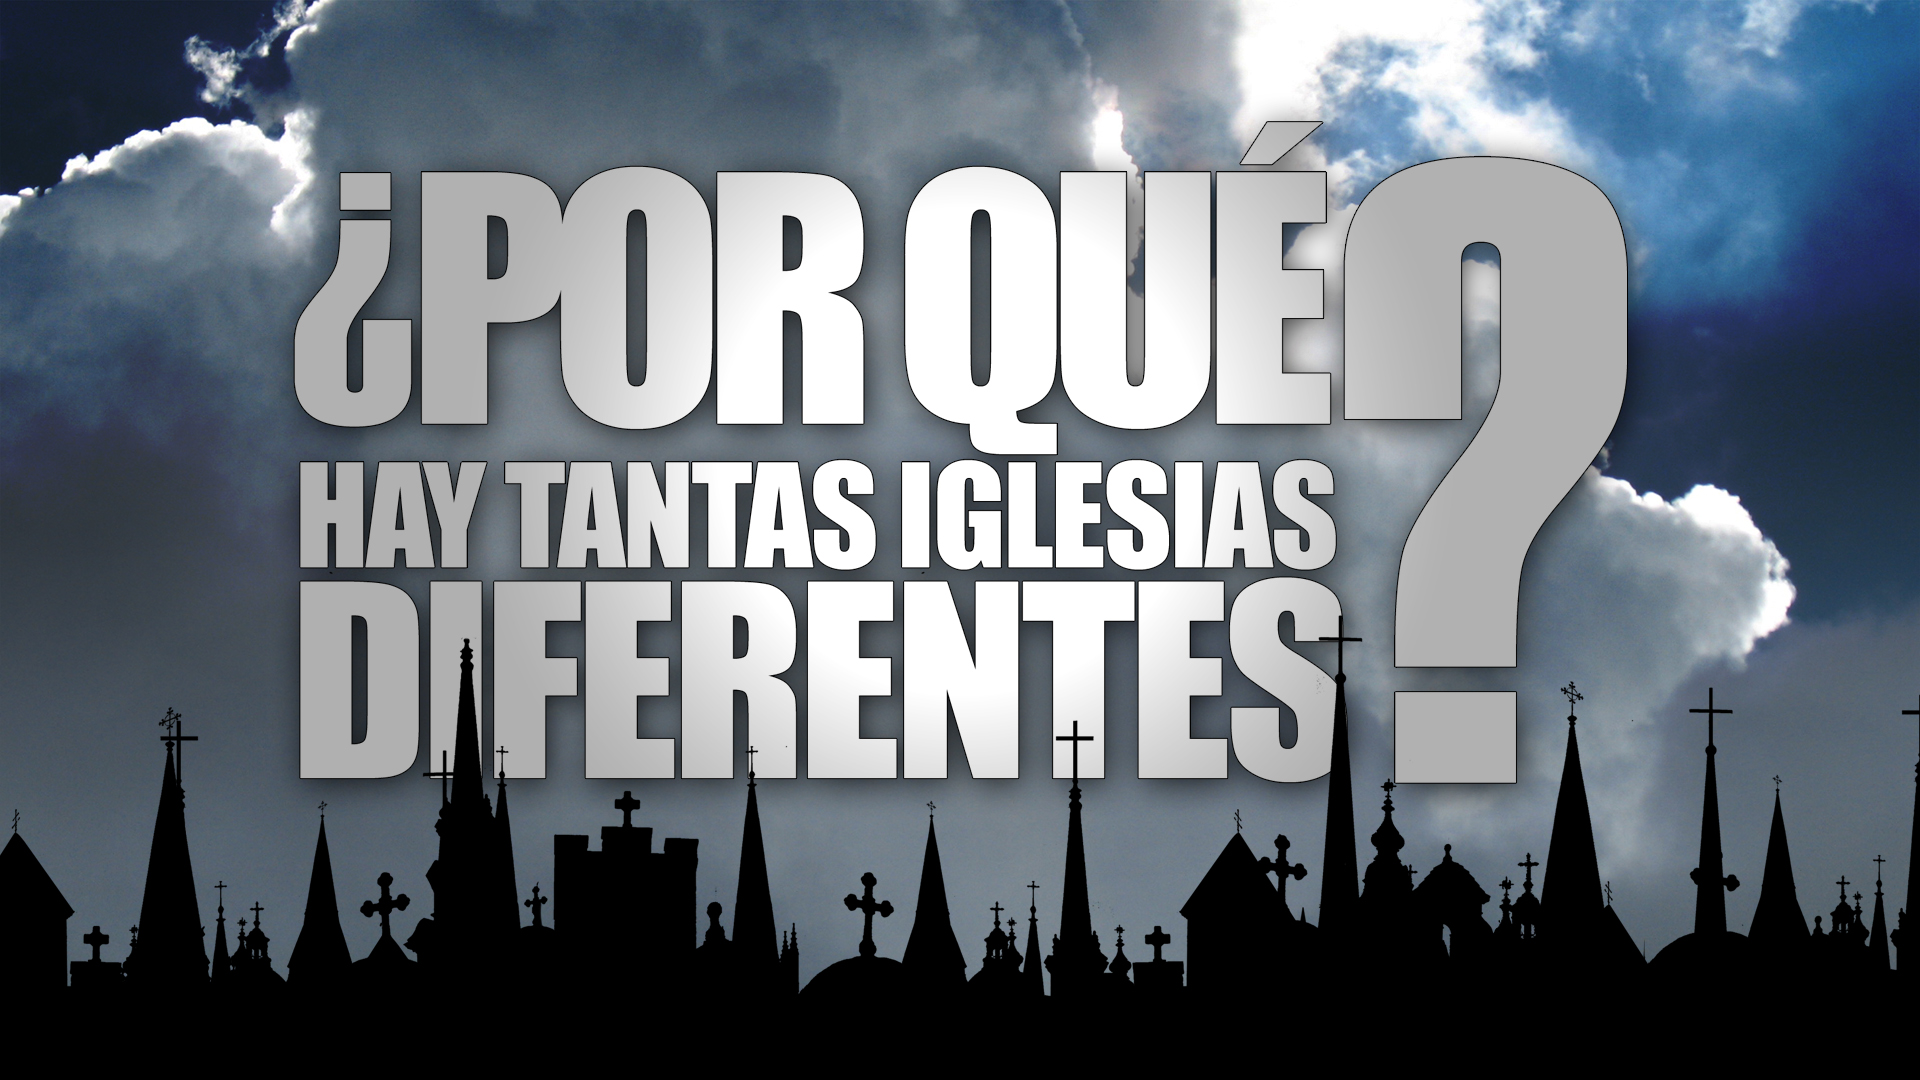 ¿Por Qué Hay Tantas Iglesias? (Why Are There So Many Churches?) - Spanish Version